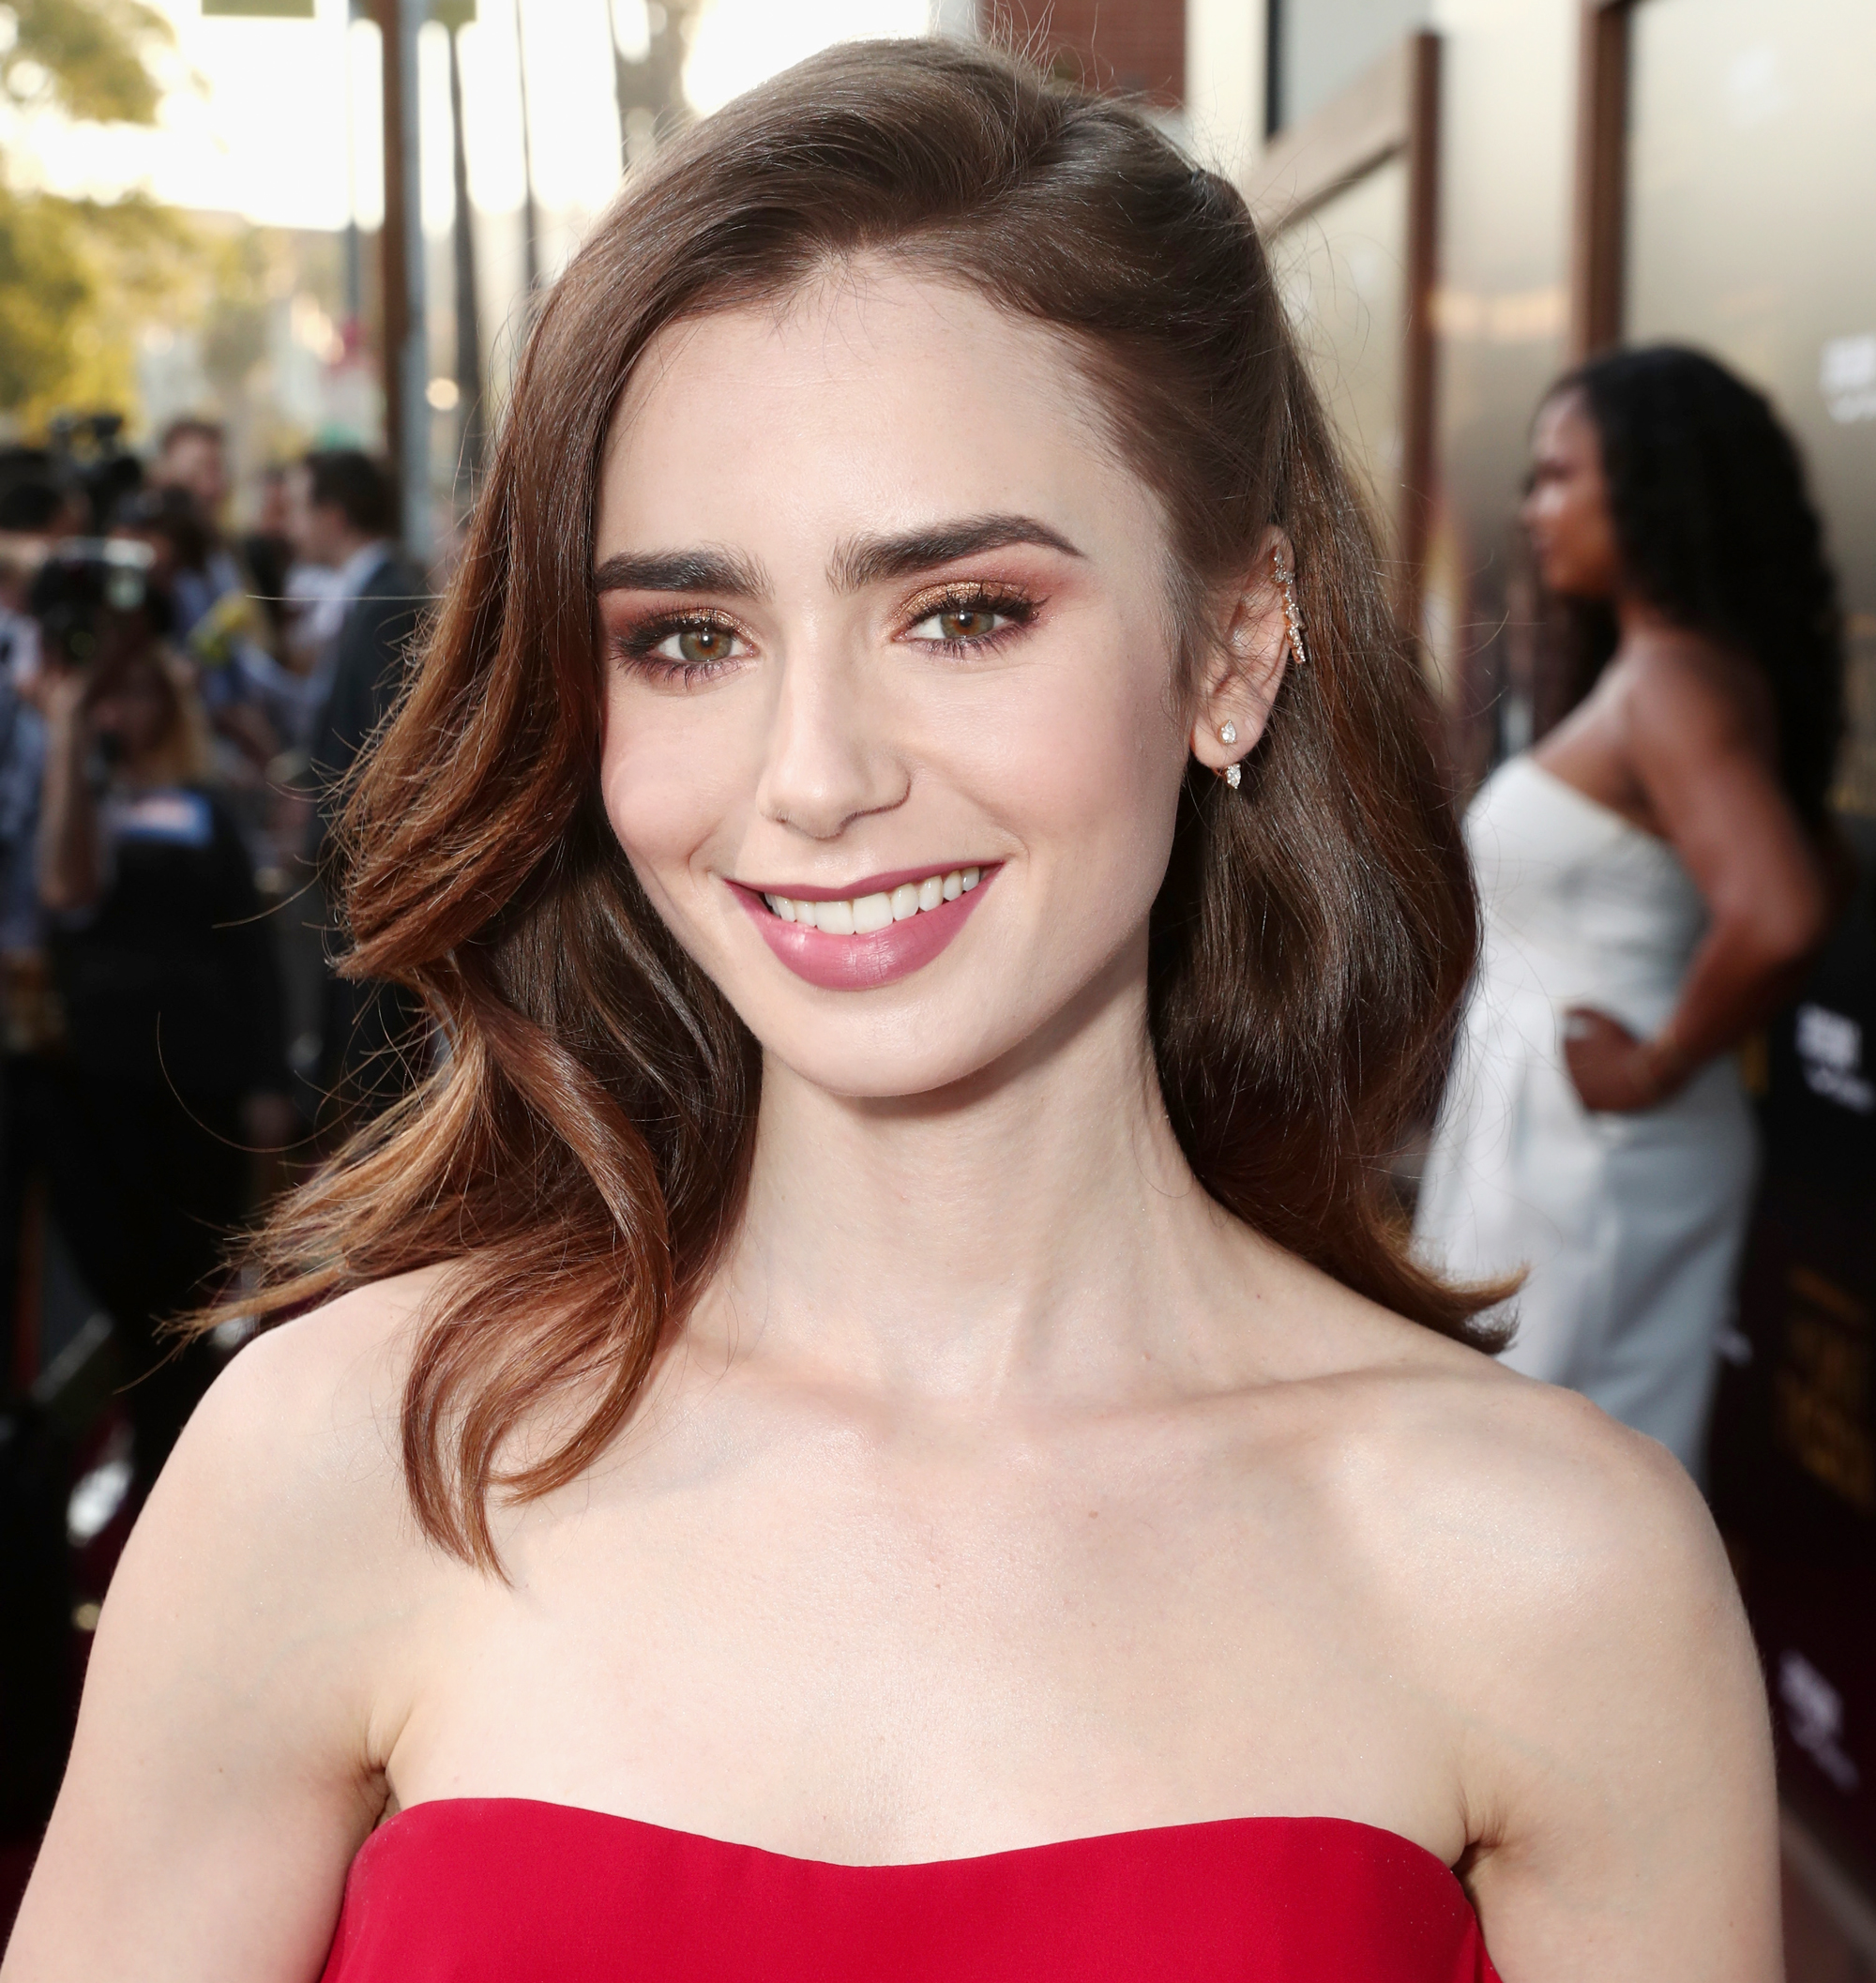 Lily Collins Just Made Her Most Drastic Hair Color Change Yet